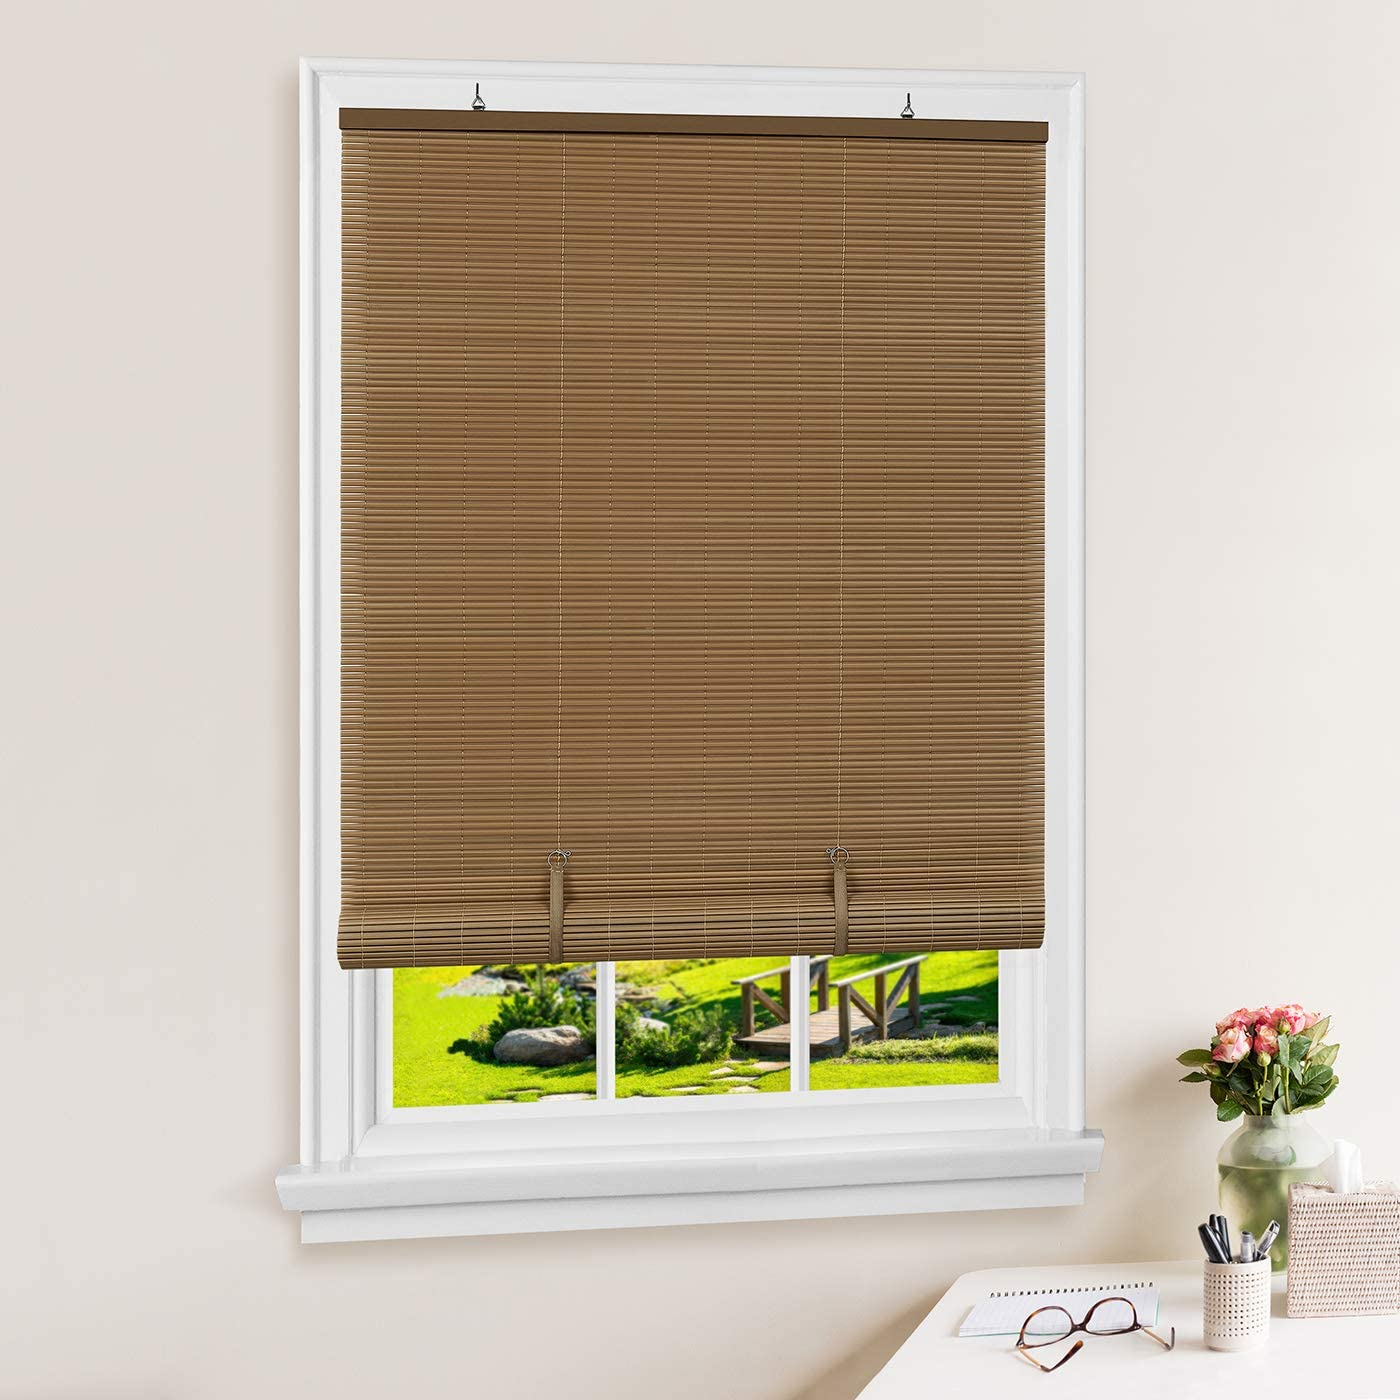 PowerSellerUSA Oval Cordless Outdoor Rollup Light Filtering Window Blinds Roller Shades 48 Width x 72 Length , Woodtone